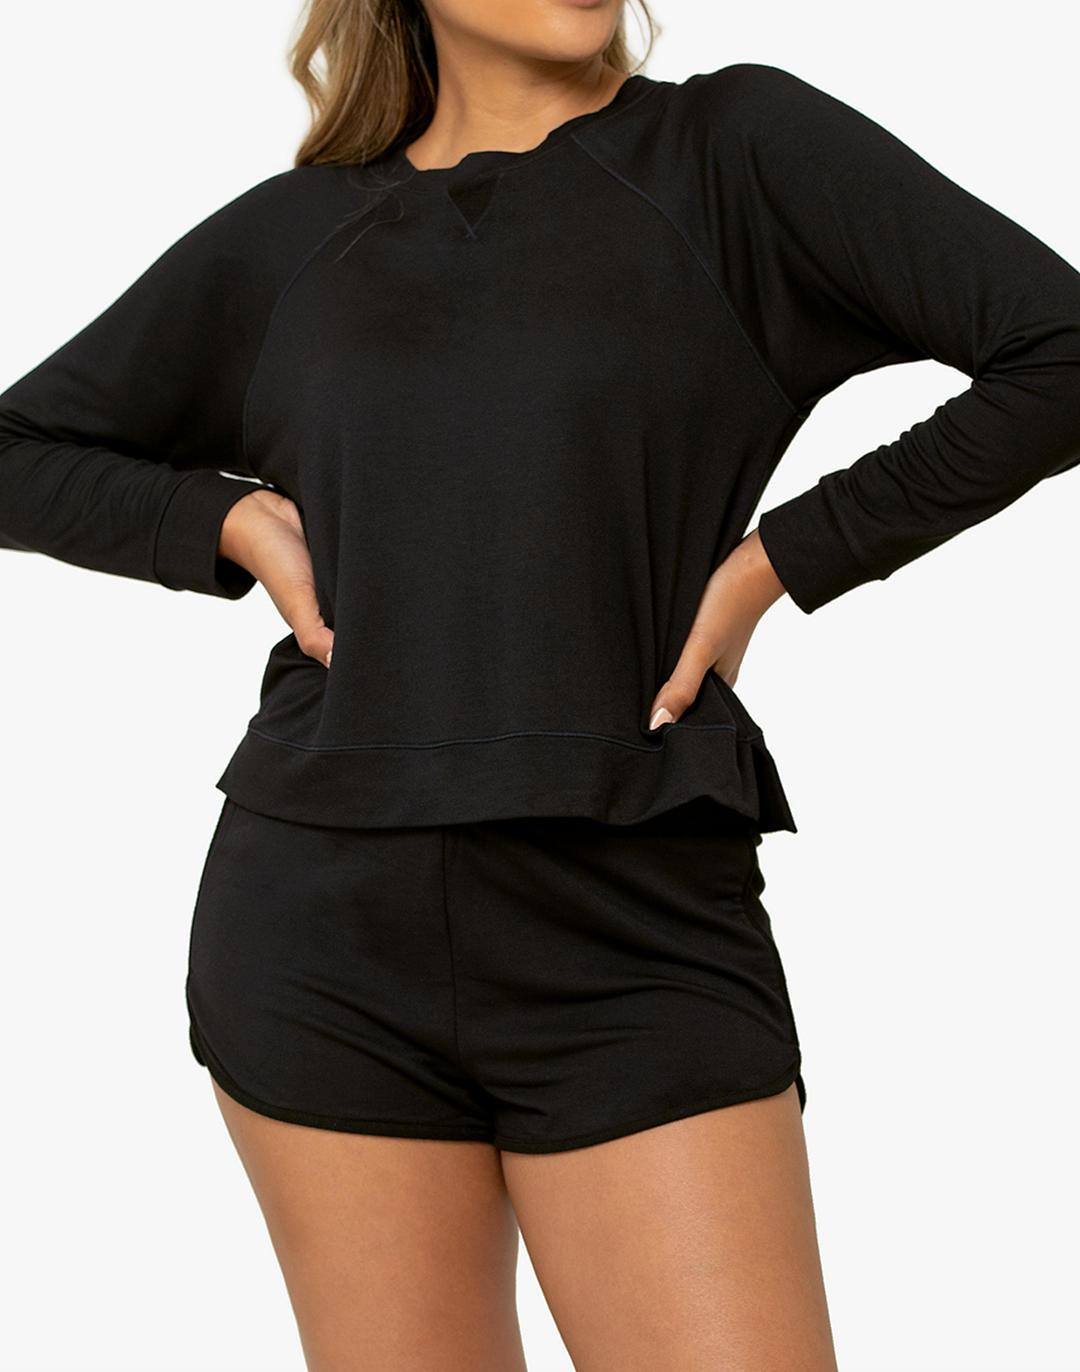 LIVELY The Terry-Soft Short